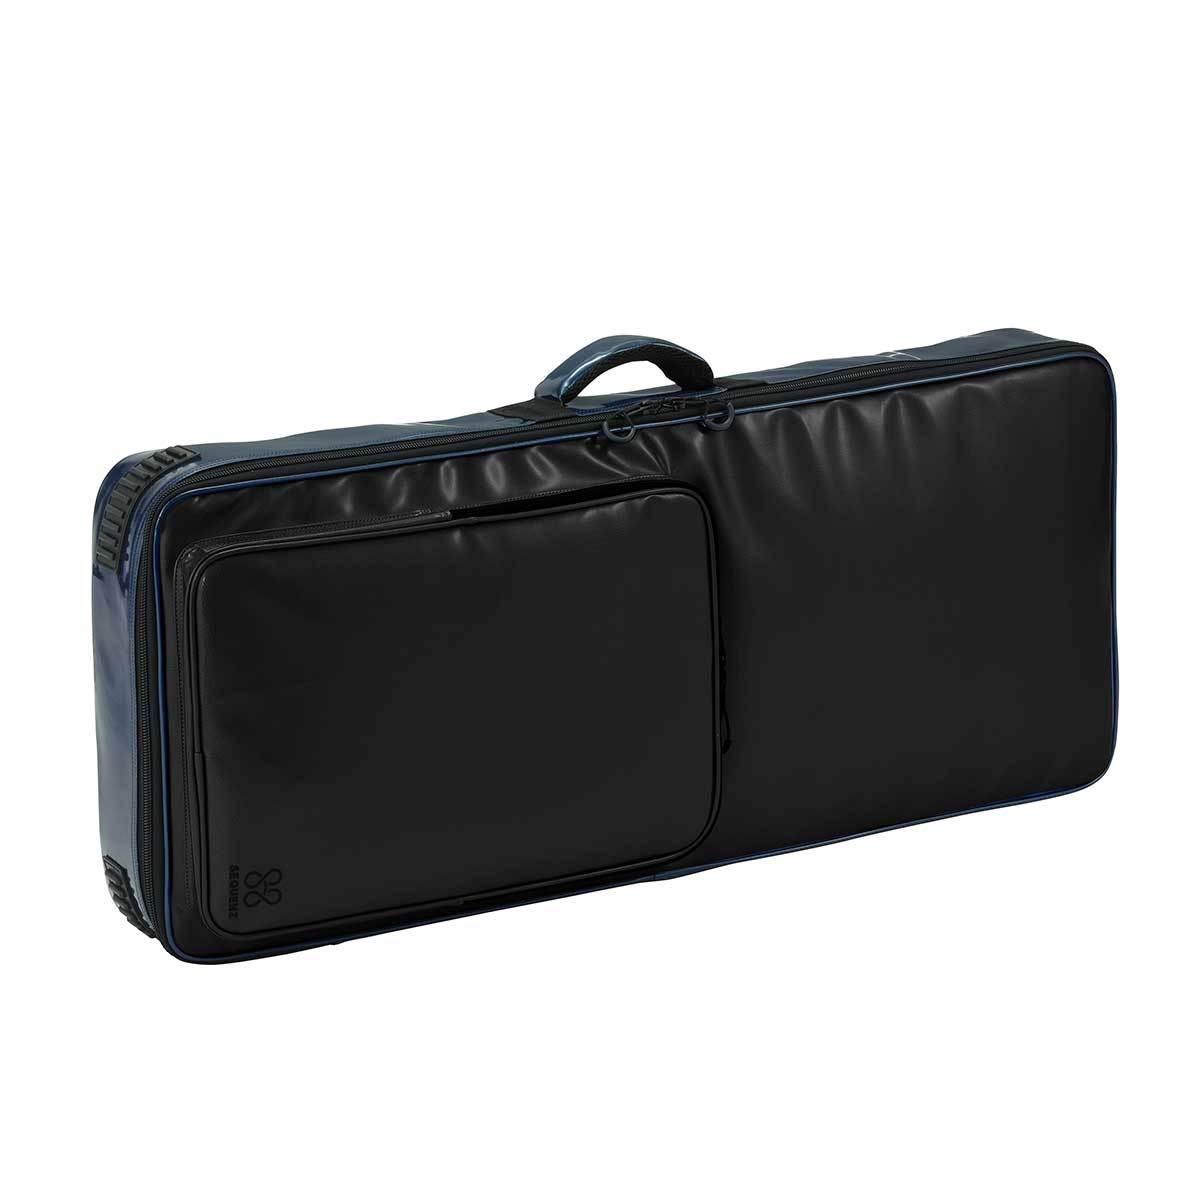 DJ Bags & Cases - Sequenz Soft Case For Korg Prologue 8/16 Black